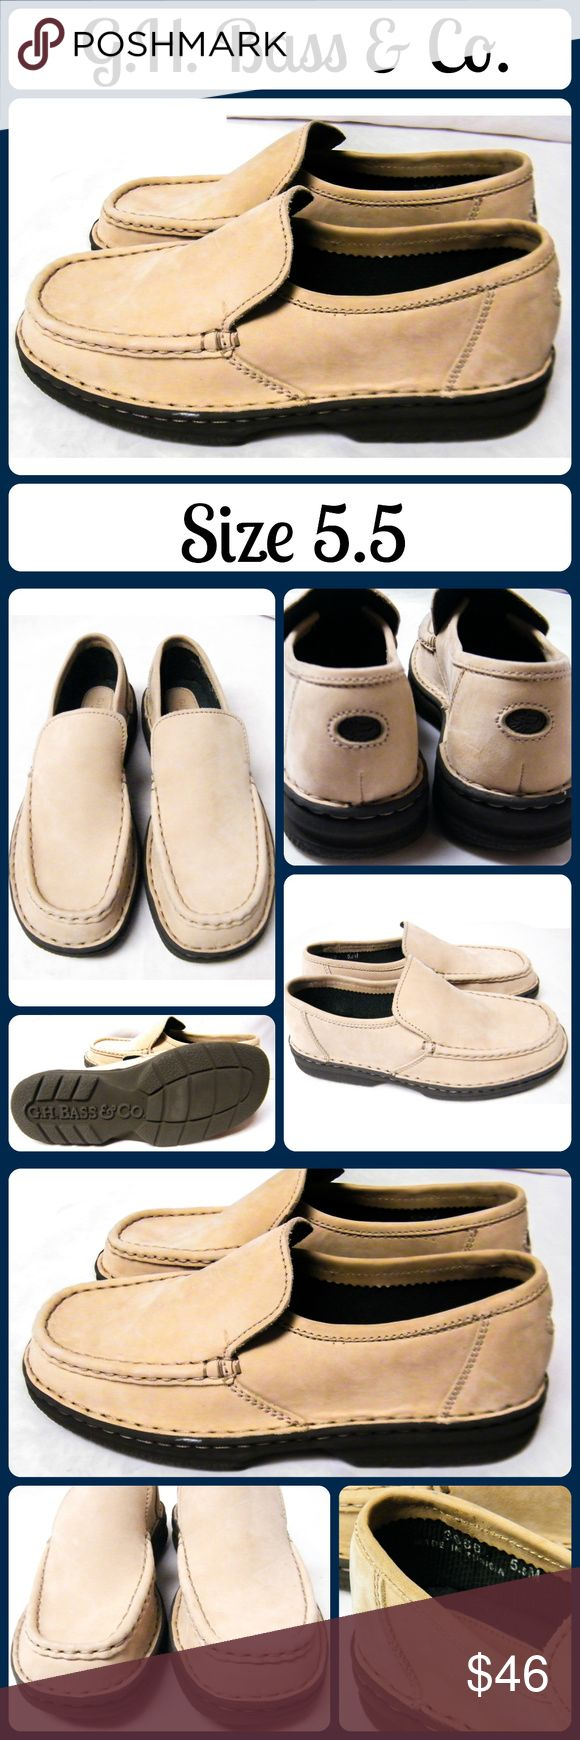 New GH BASS &CO Loafers Slip on Boat/Dock Shoes Never worn! Soft, brushed tan leather. Very sturdy shoes, no stains, tears, or marks.... From a smoke-free, No trades Bass Shoes Flats & Loafers